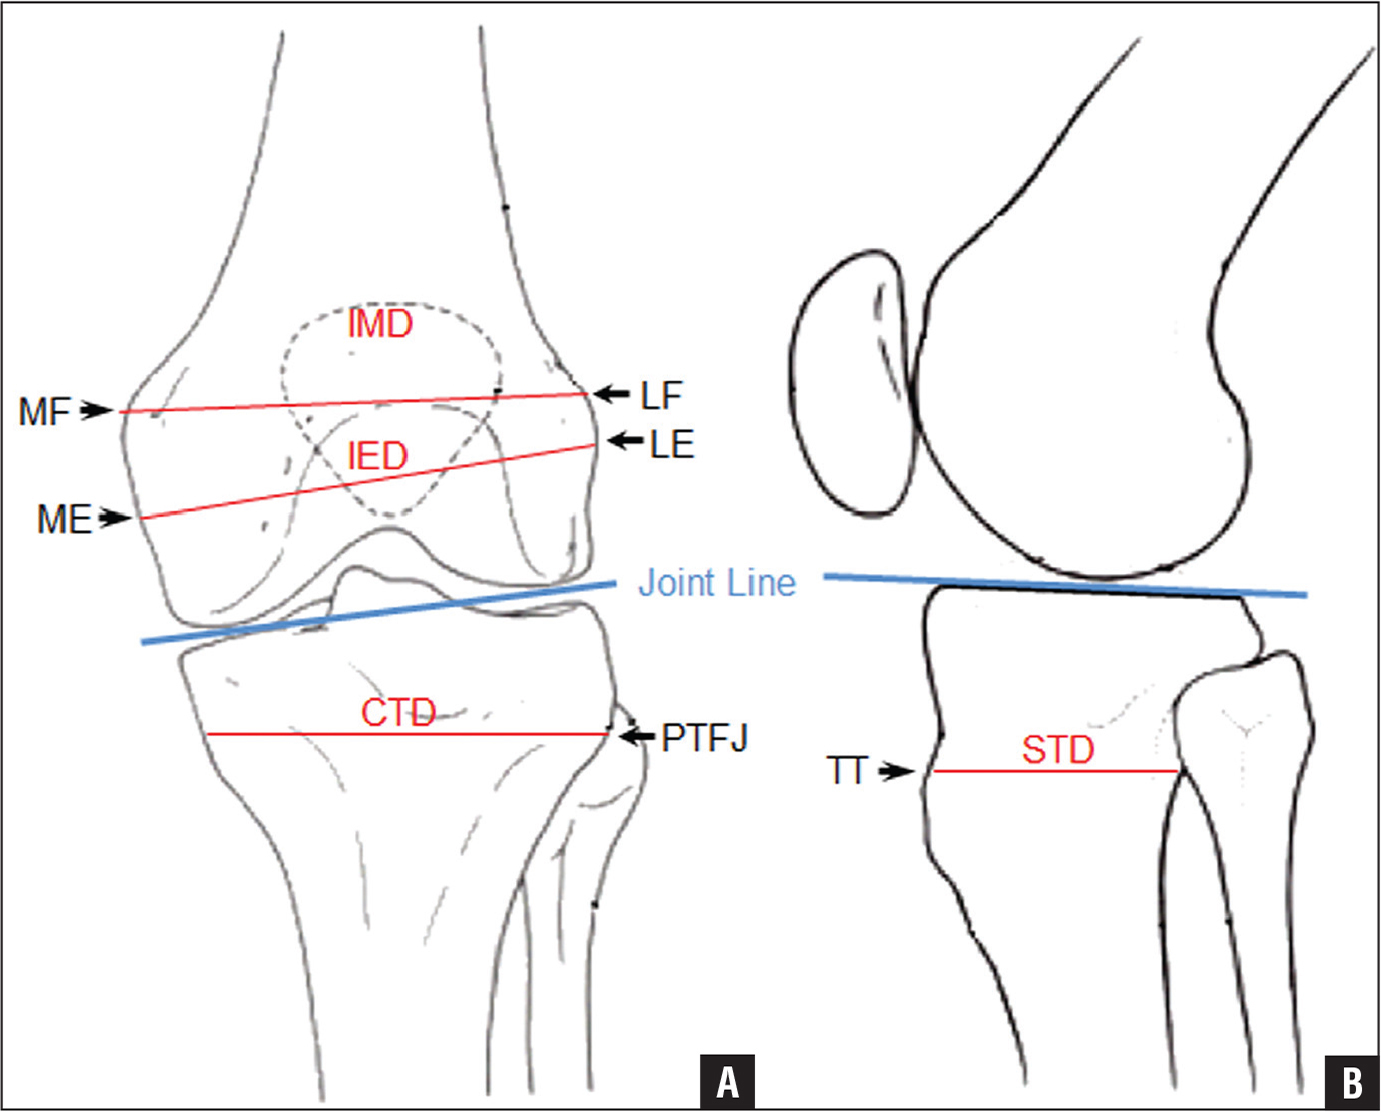 calculating the position of the joint line of the knee using a coronal a and sagittal b diagrams of anatomical landmarks